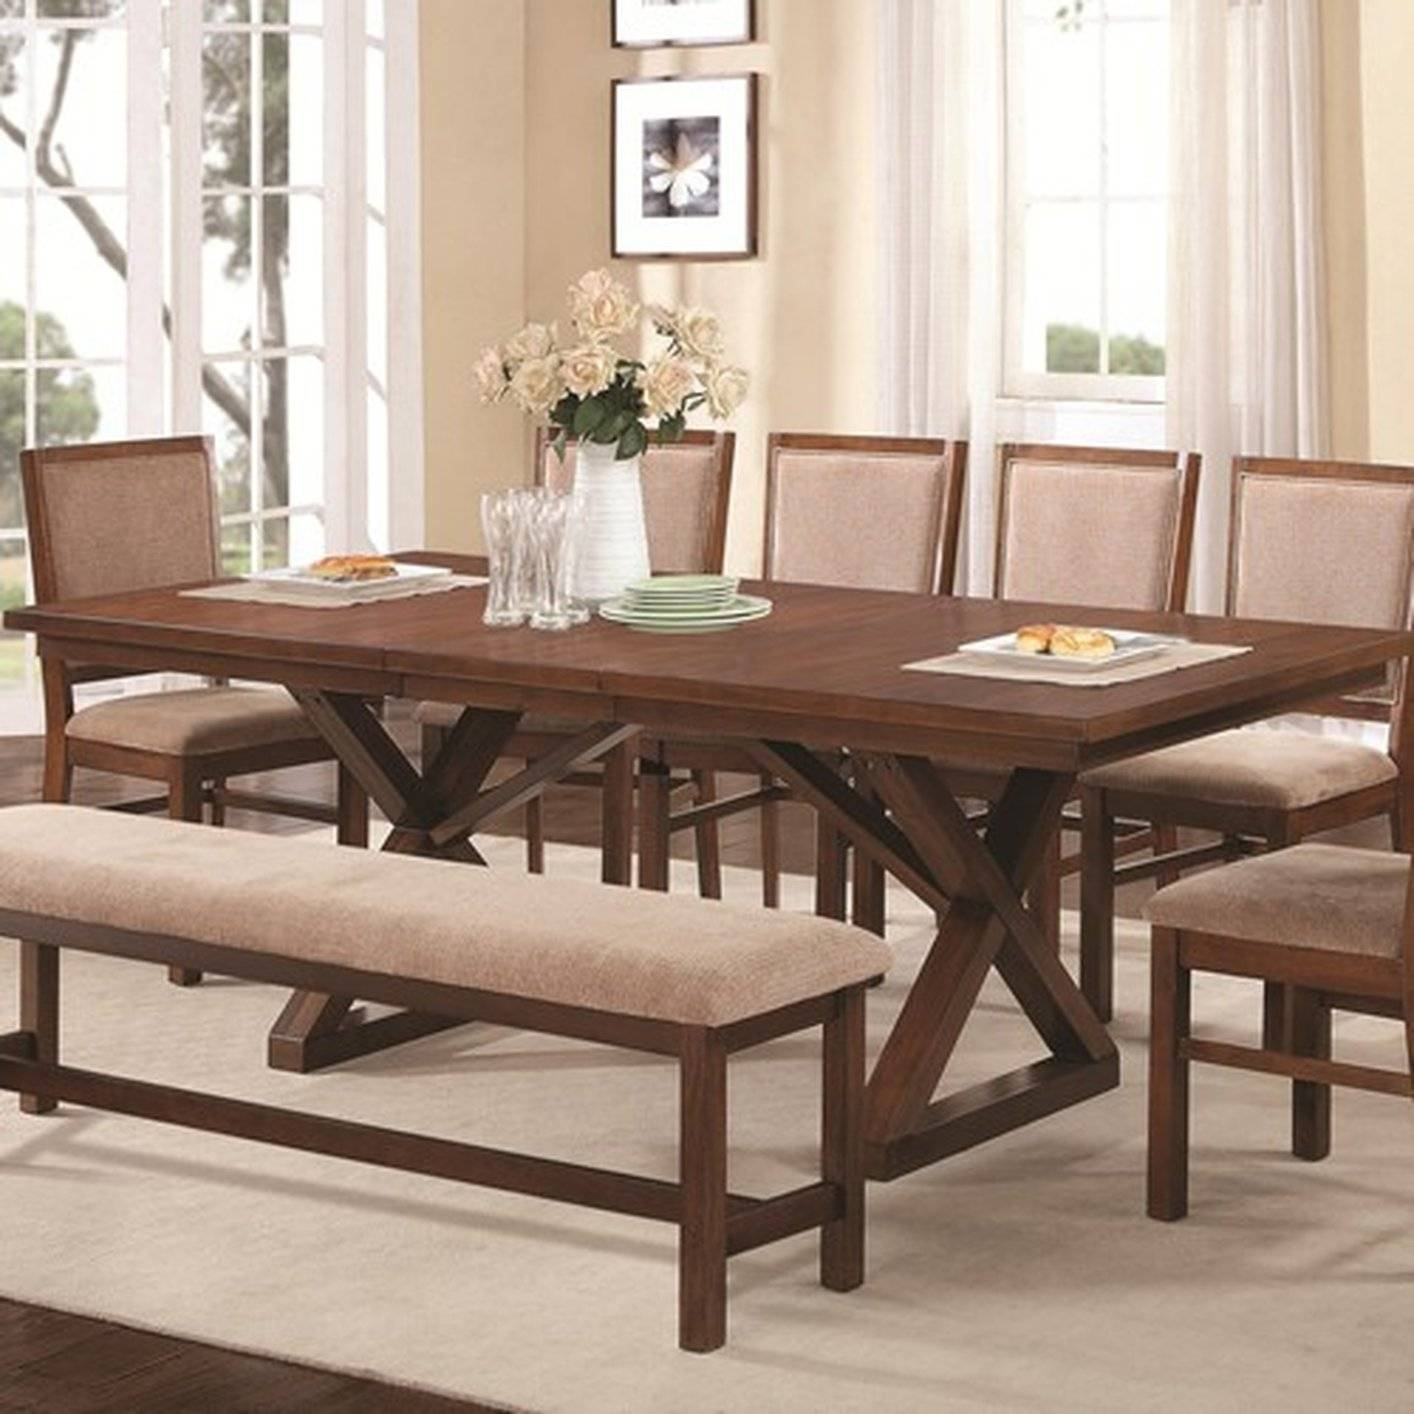 Brown Wood Dining Table - Steal-A-Sofa Furniture Outlet Los Angeles Ca within Dining Sofa Chairs (Image 2 of 15)